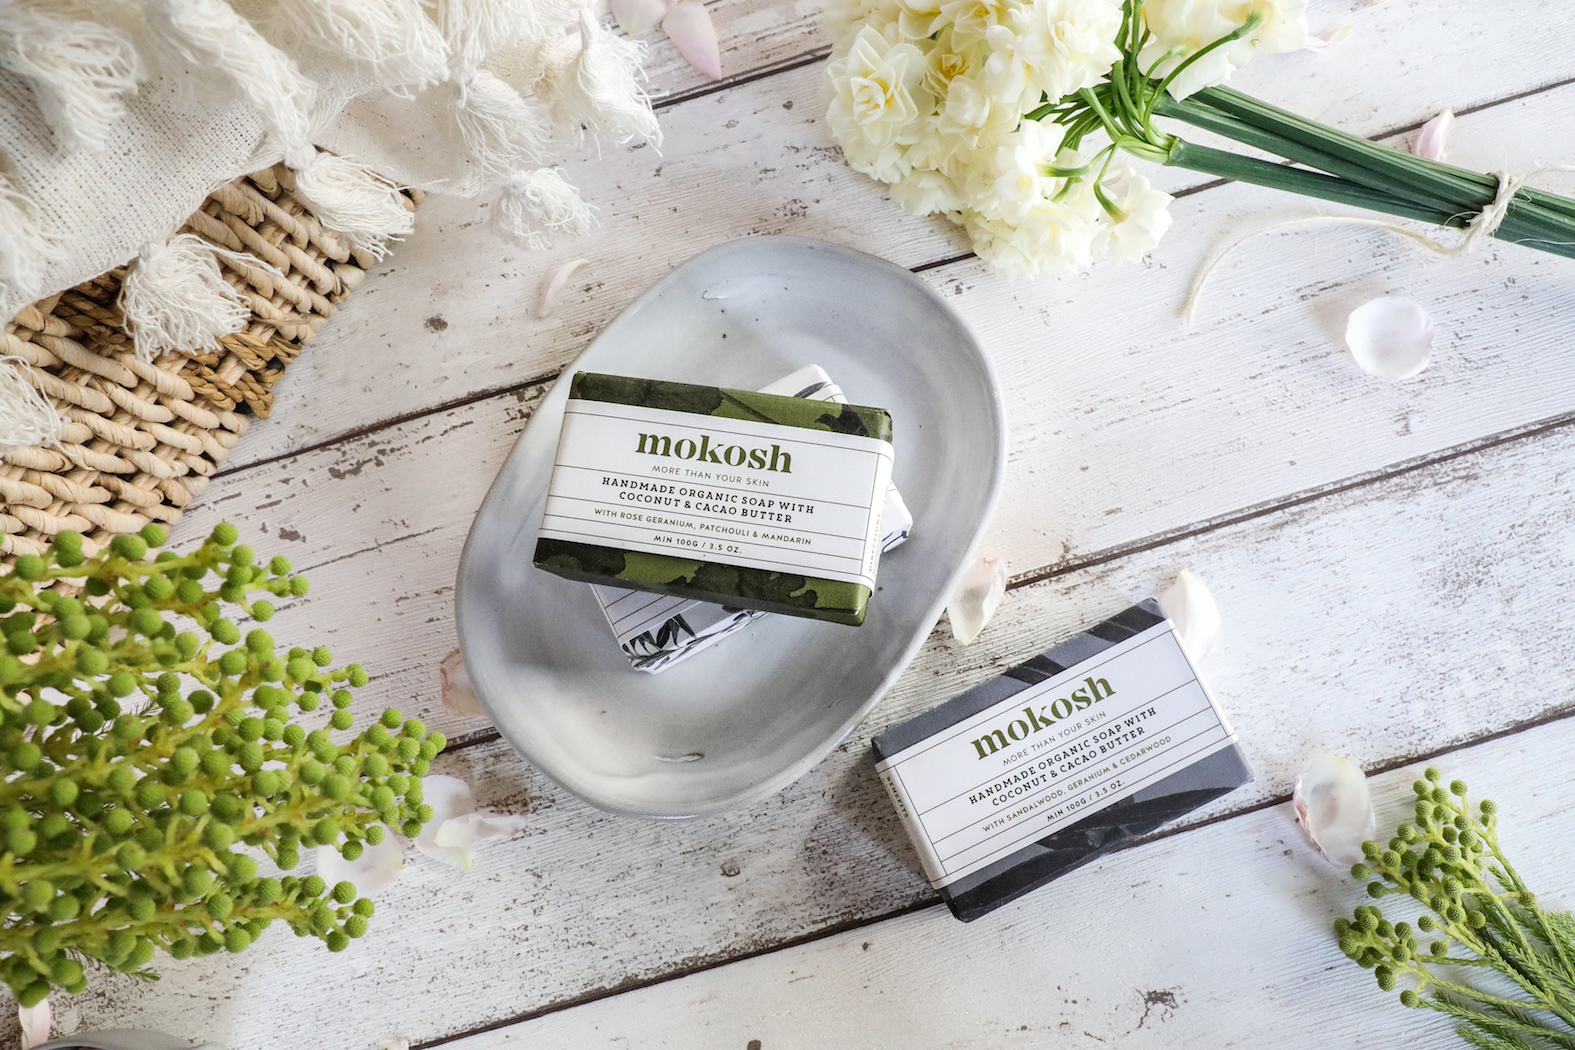 Mokosh-certified-organic-bar-soap-is-palm-oil-free-and-packaged-in-recycled-paper